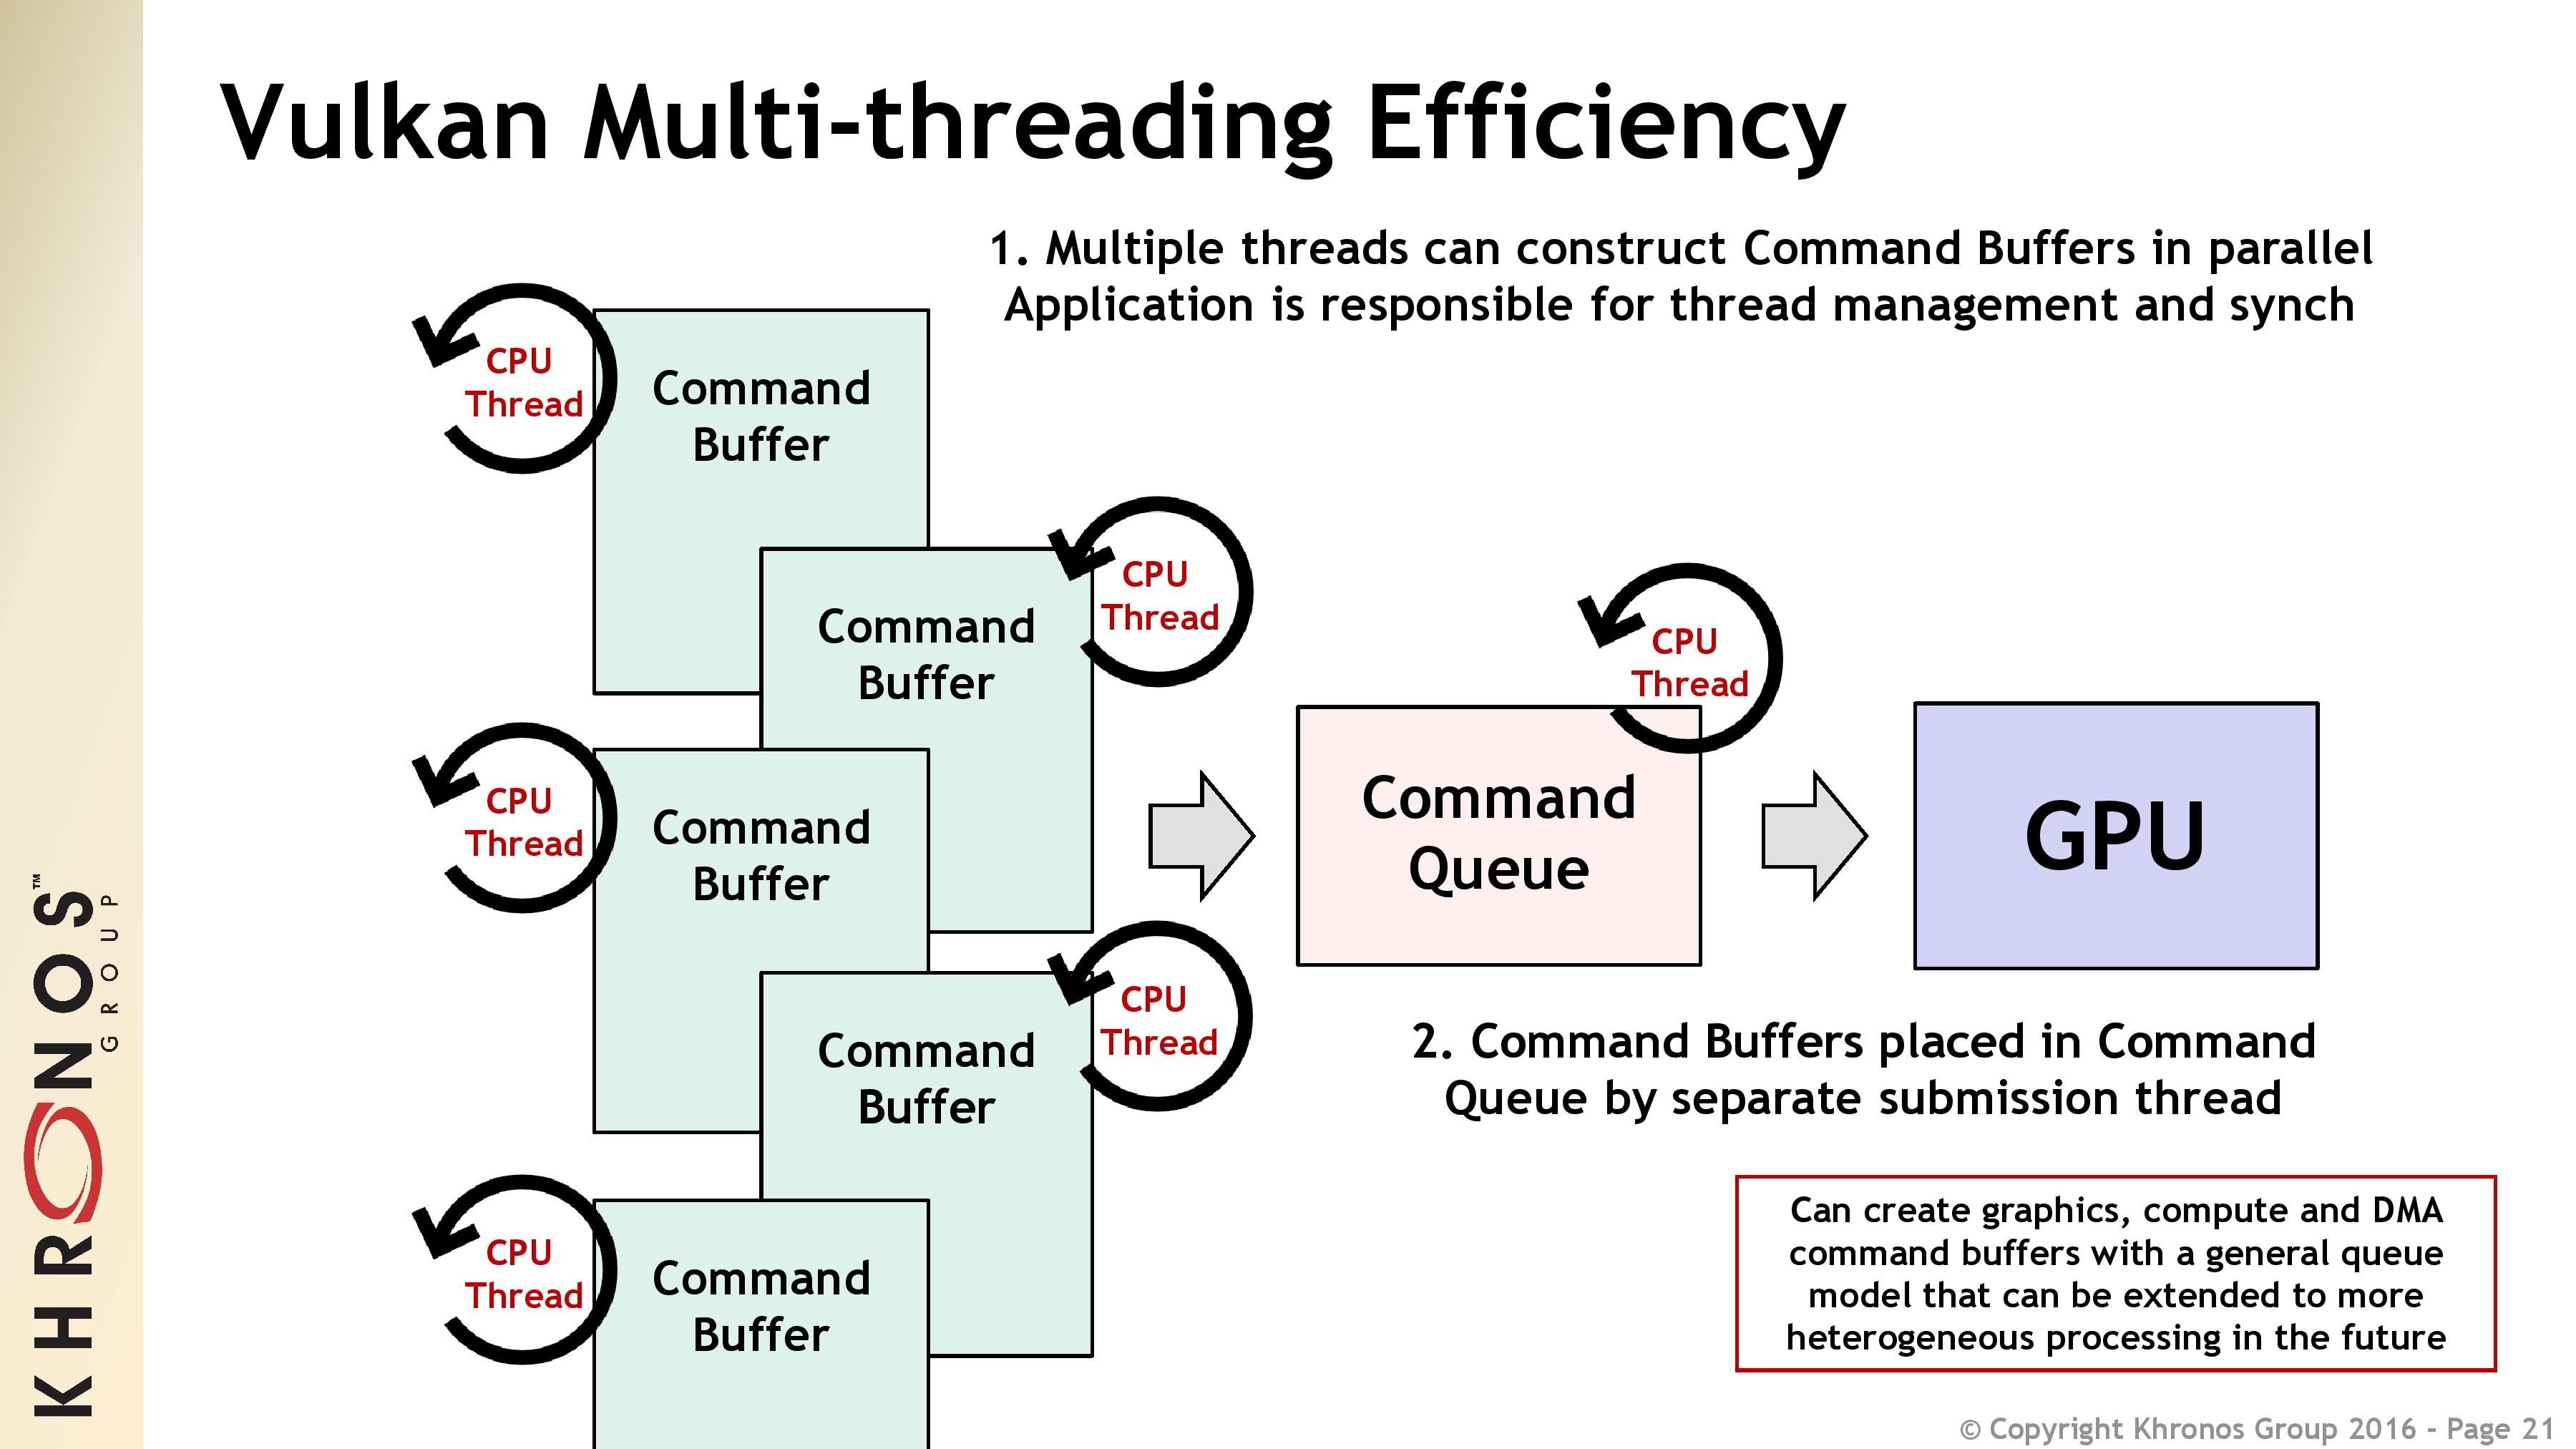 vulkan array of buffers